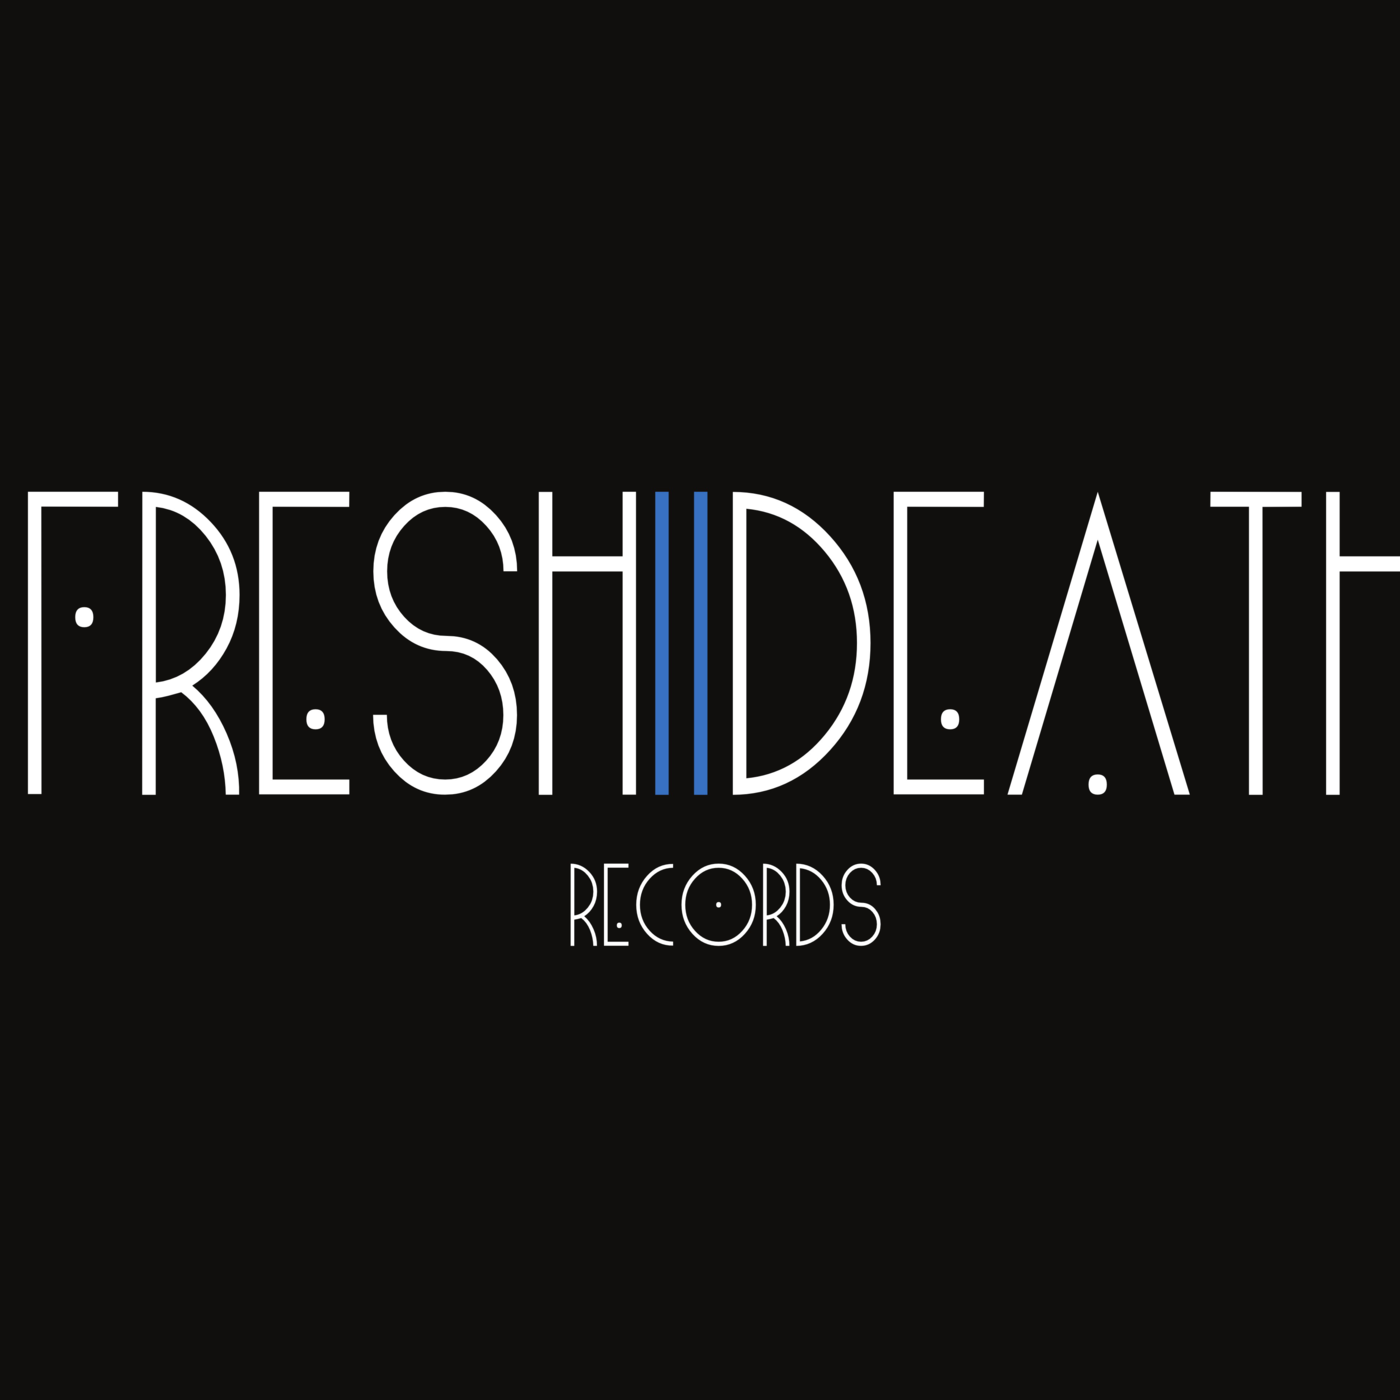 Fresh II Death Records